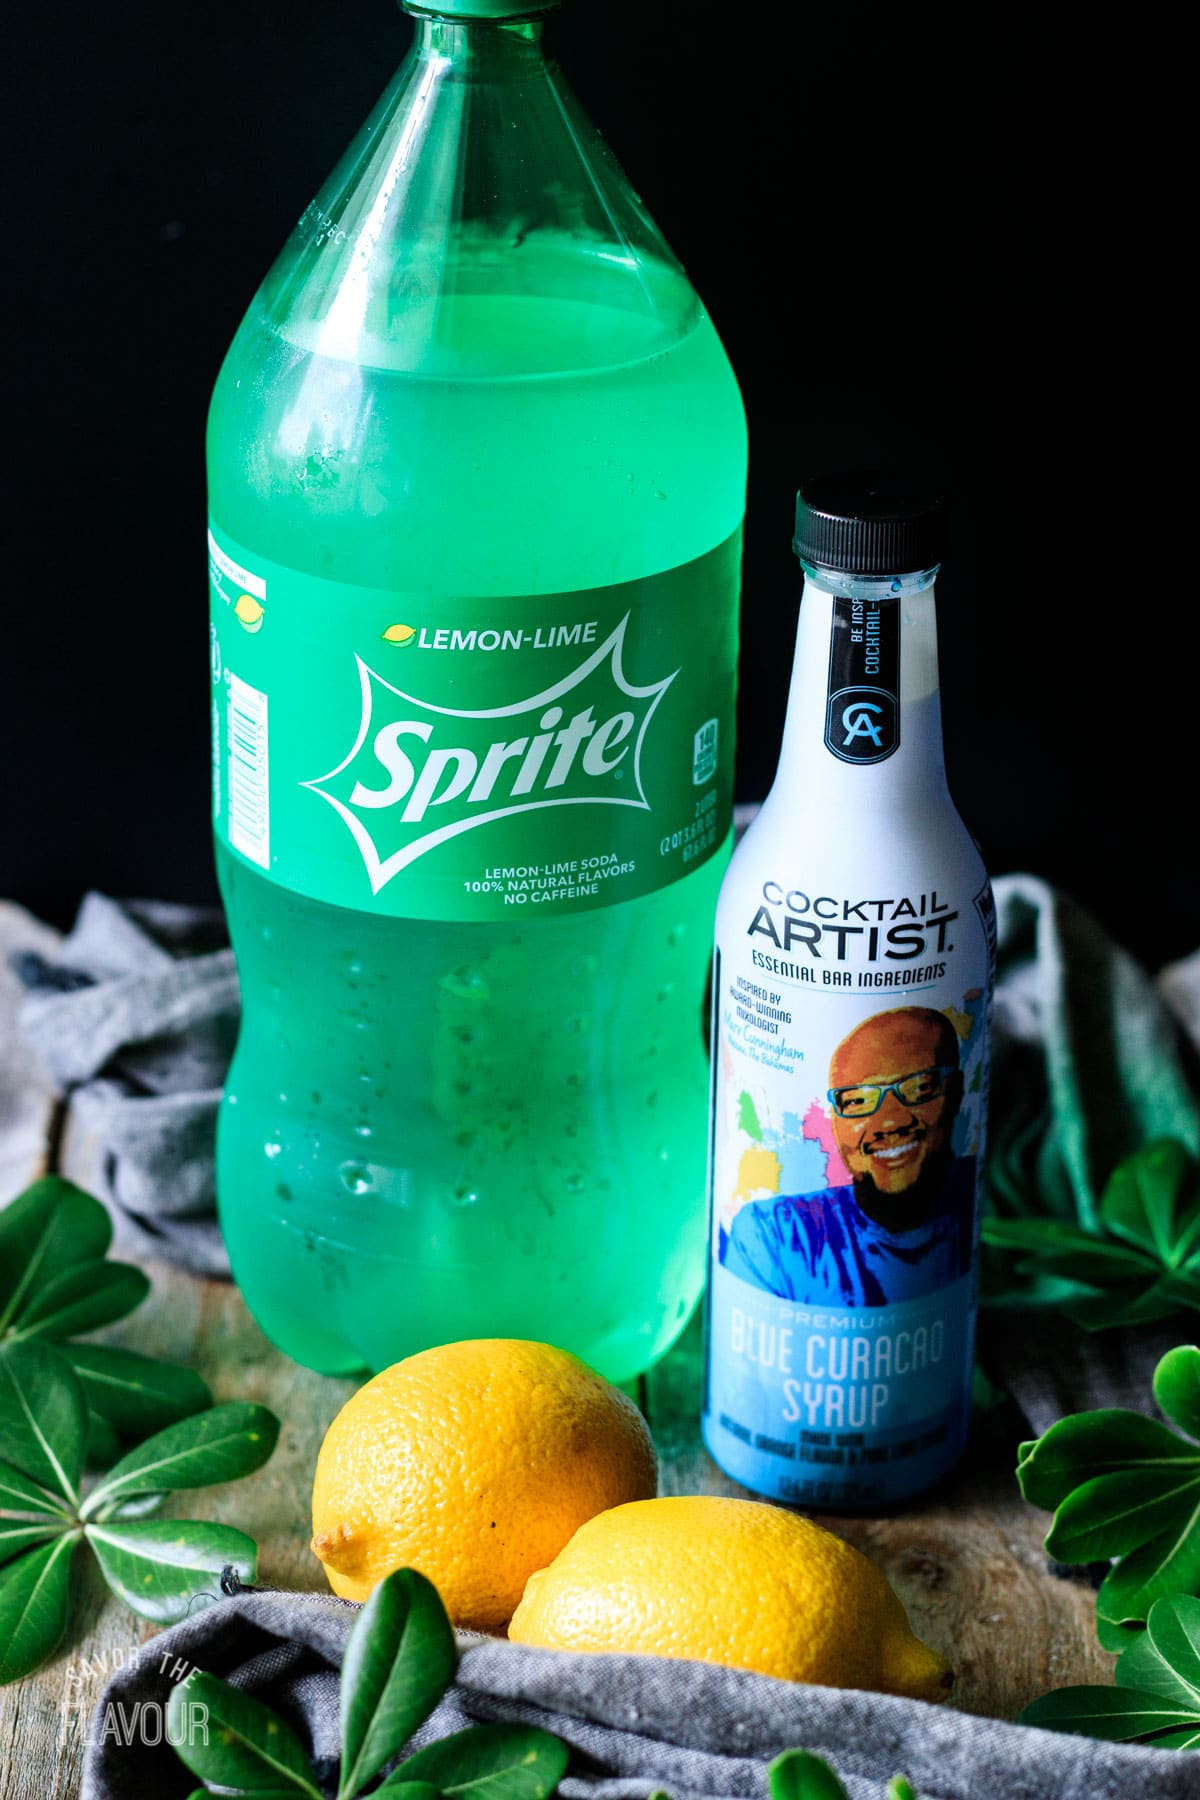 Sprite, blue Curacao syrup, and fresh lemons